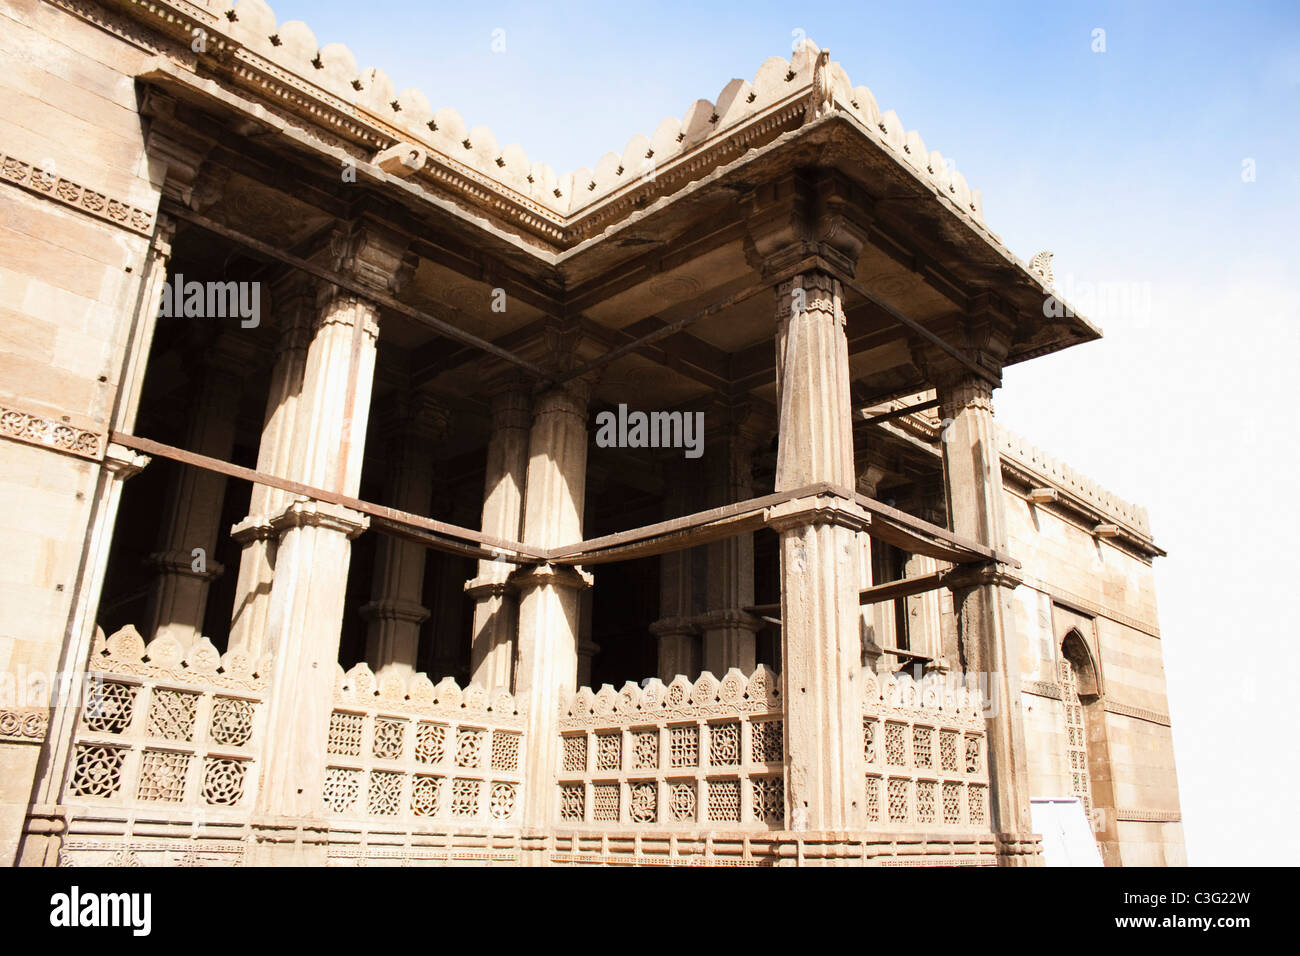 Low angle view of a building, Ahemdabad, Gujarat, India - Stock Image